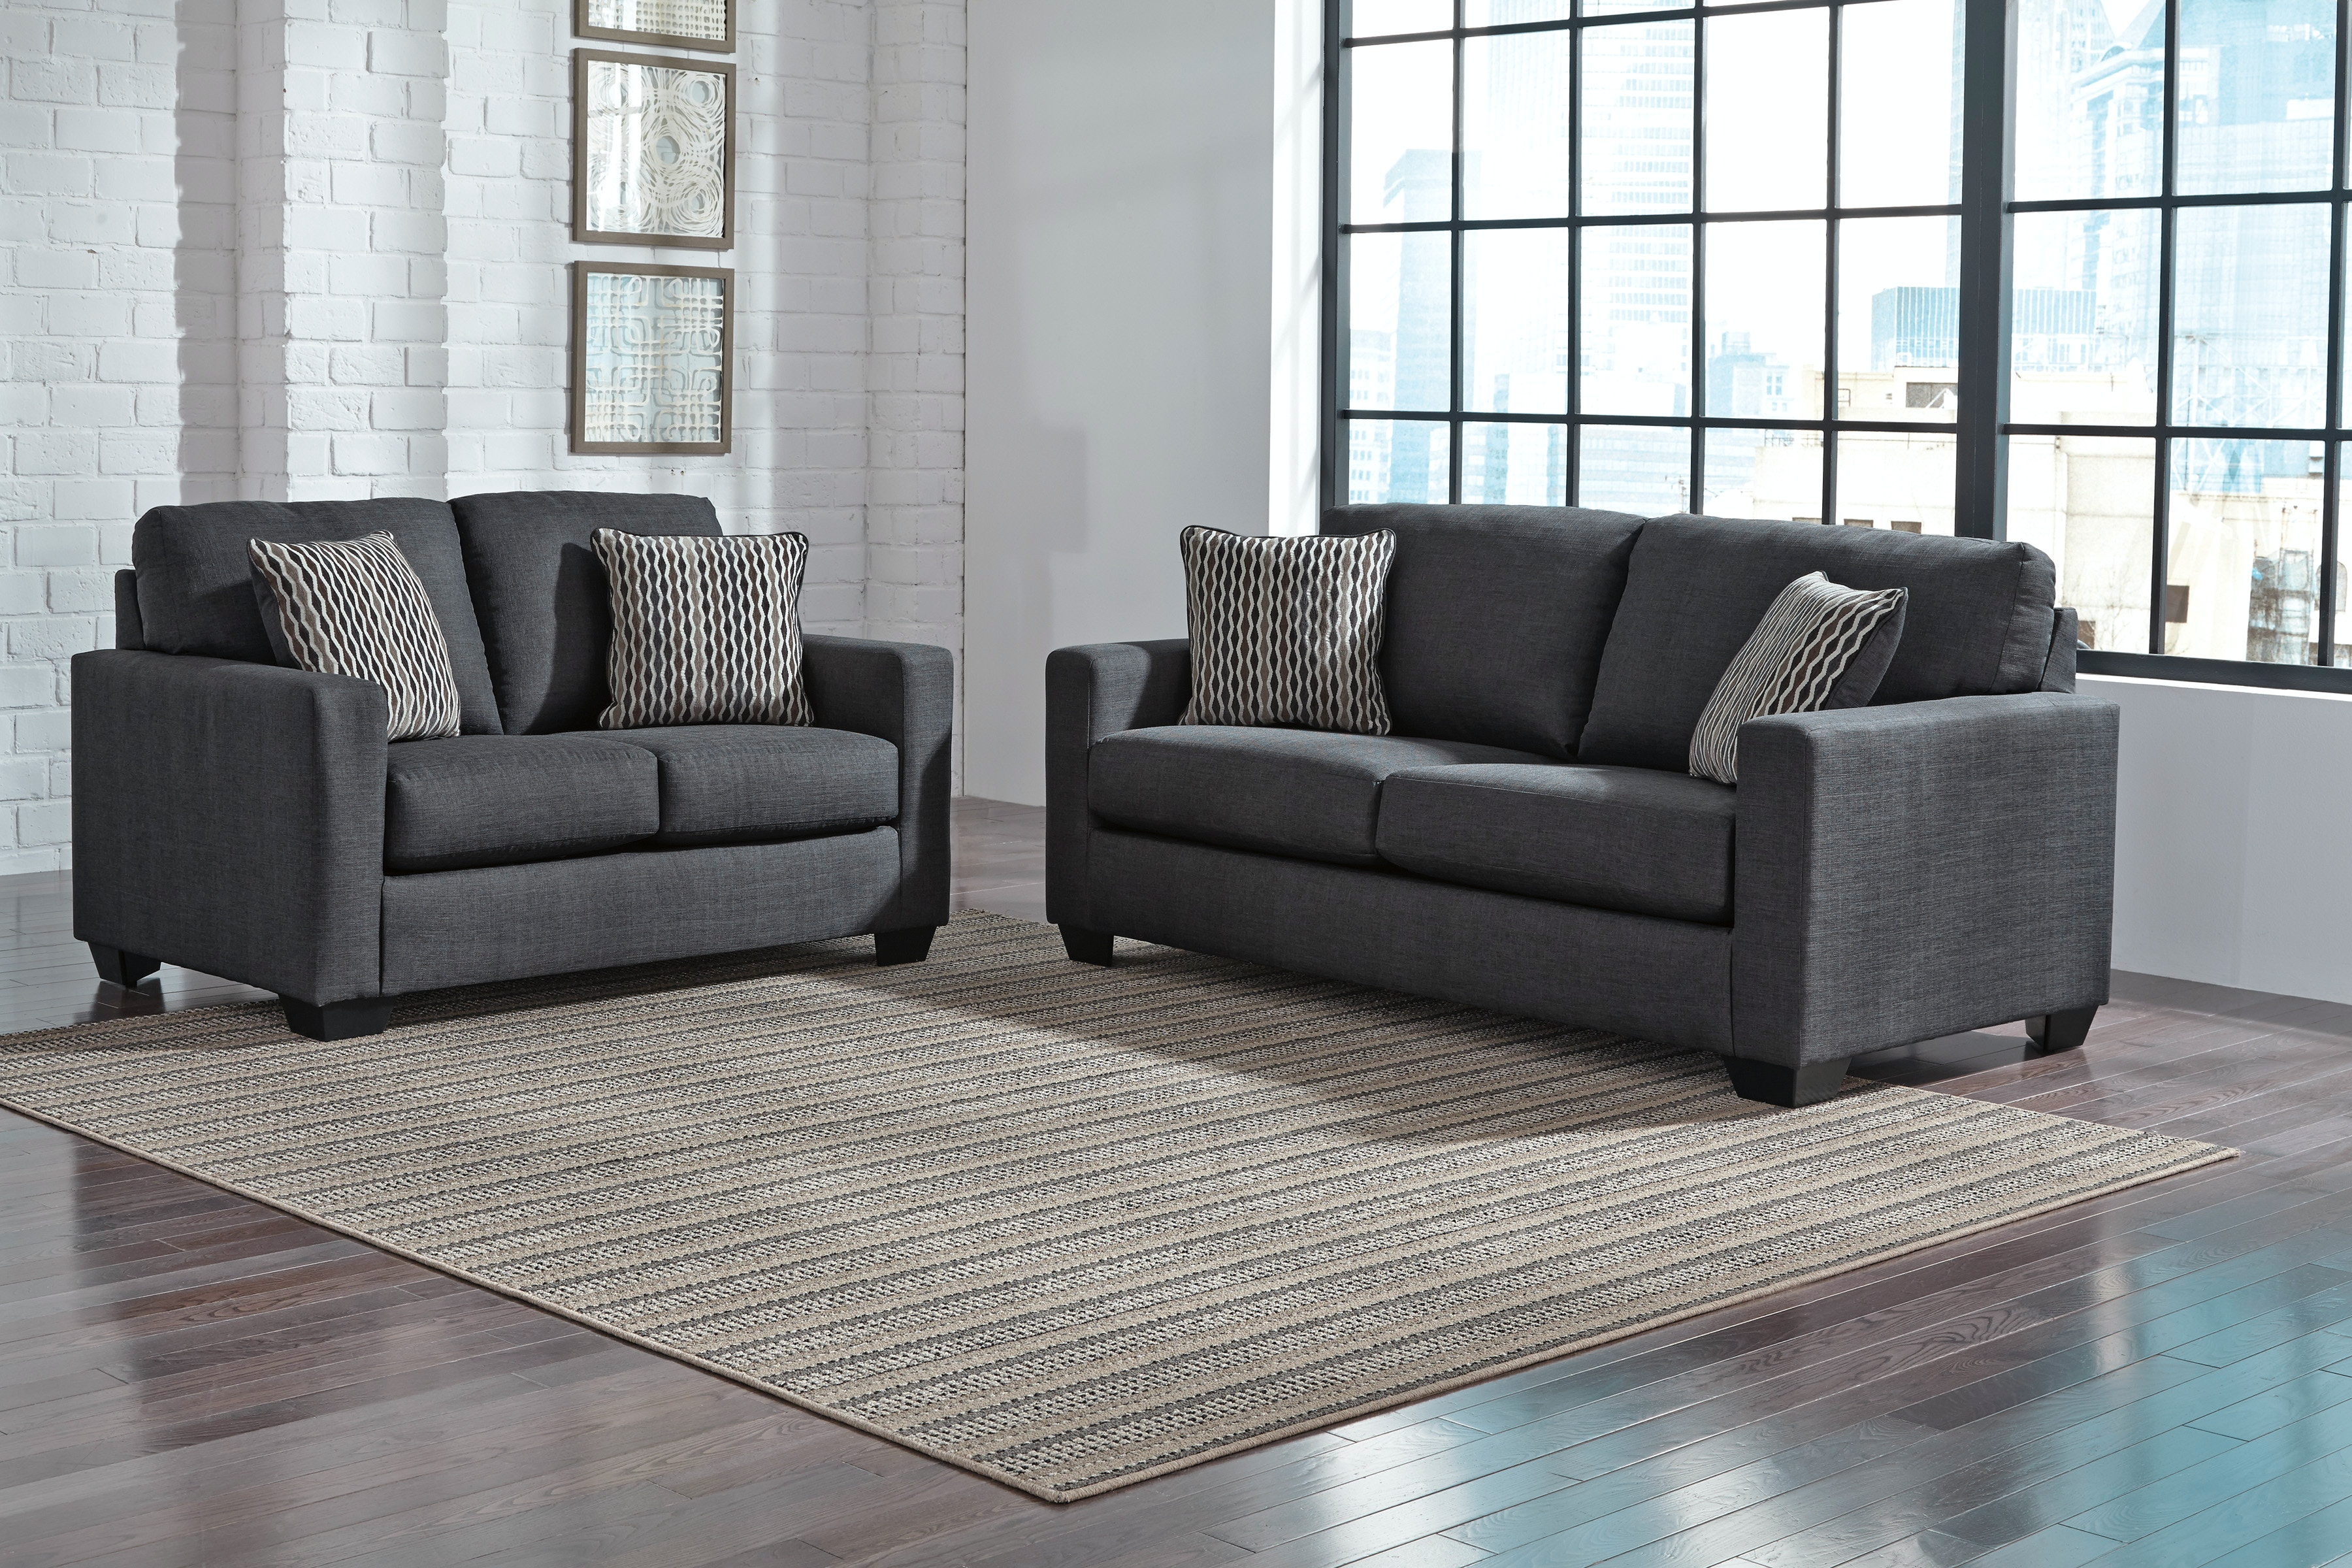 Signature Design By Ashley Sofa Loveseat On Sale At Elgin